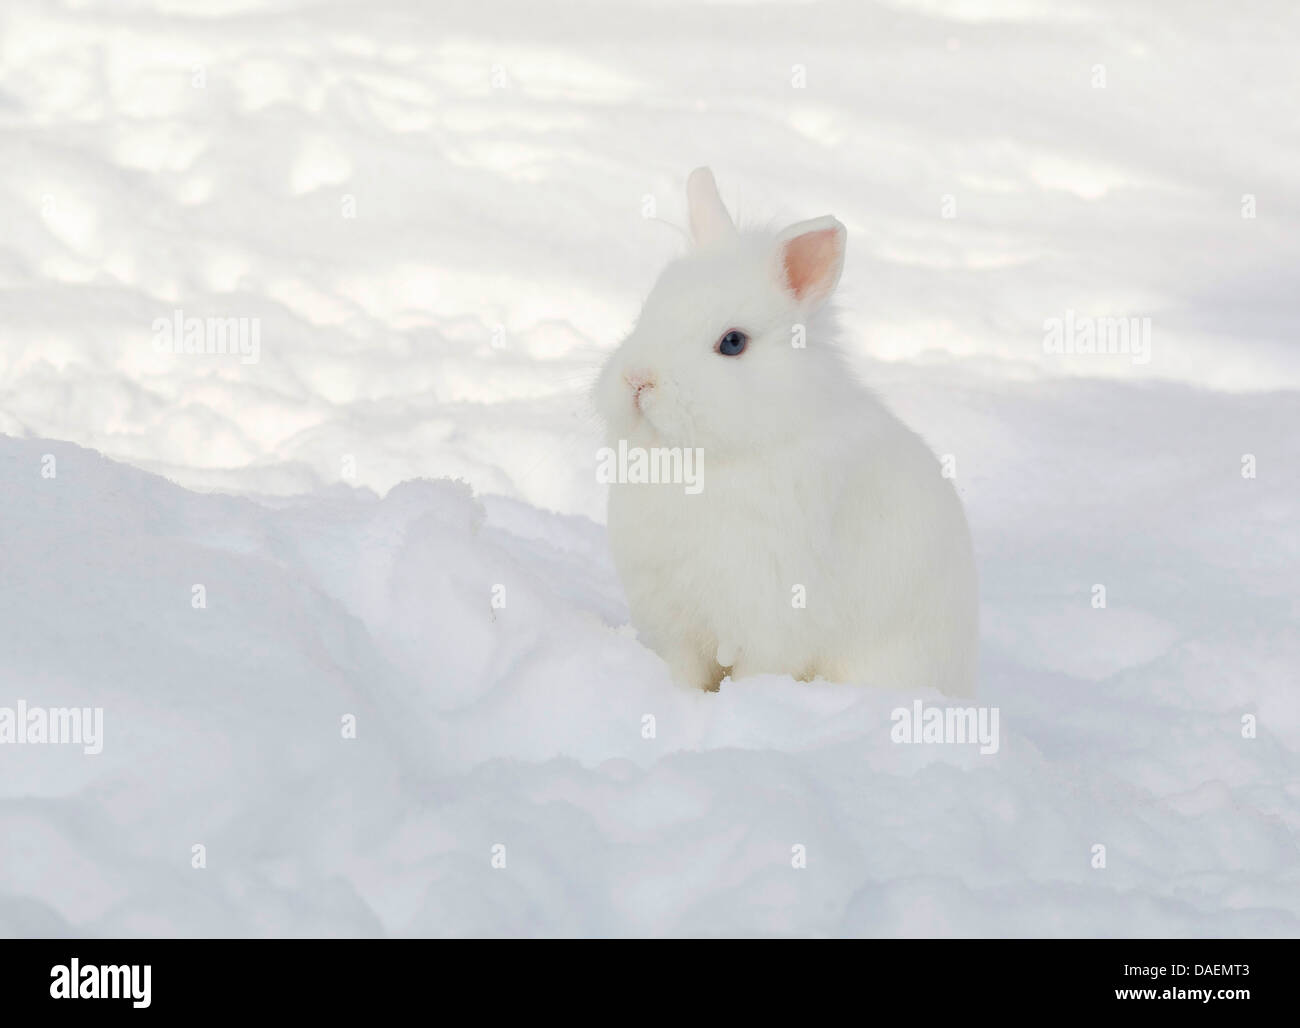 dwarf rabbit (Oryctolagus cuniculus f. domestica), white rabbit sitting in the snow, Germany - Stock Image